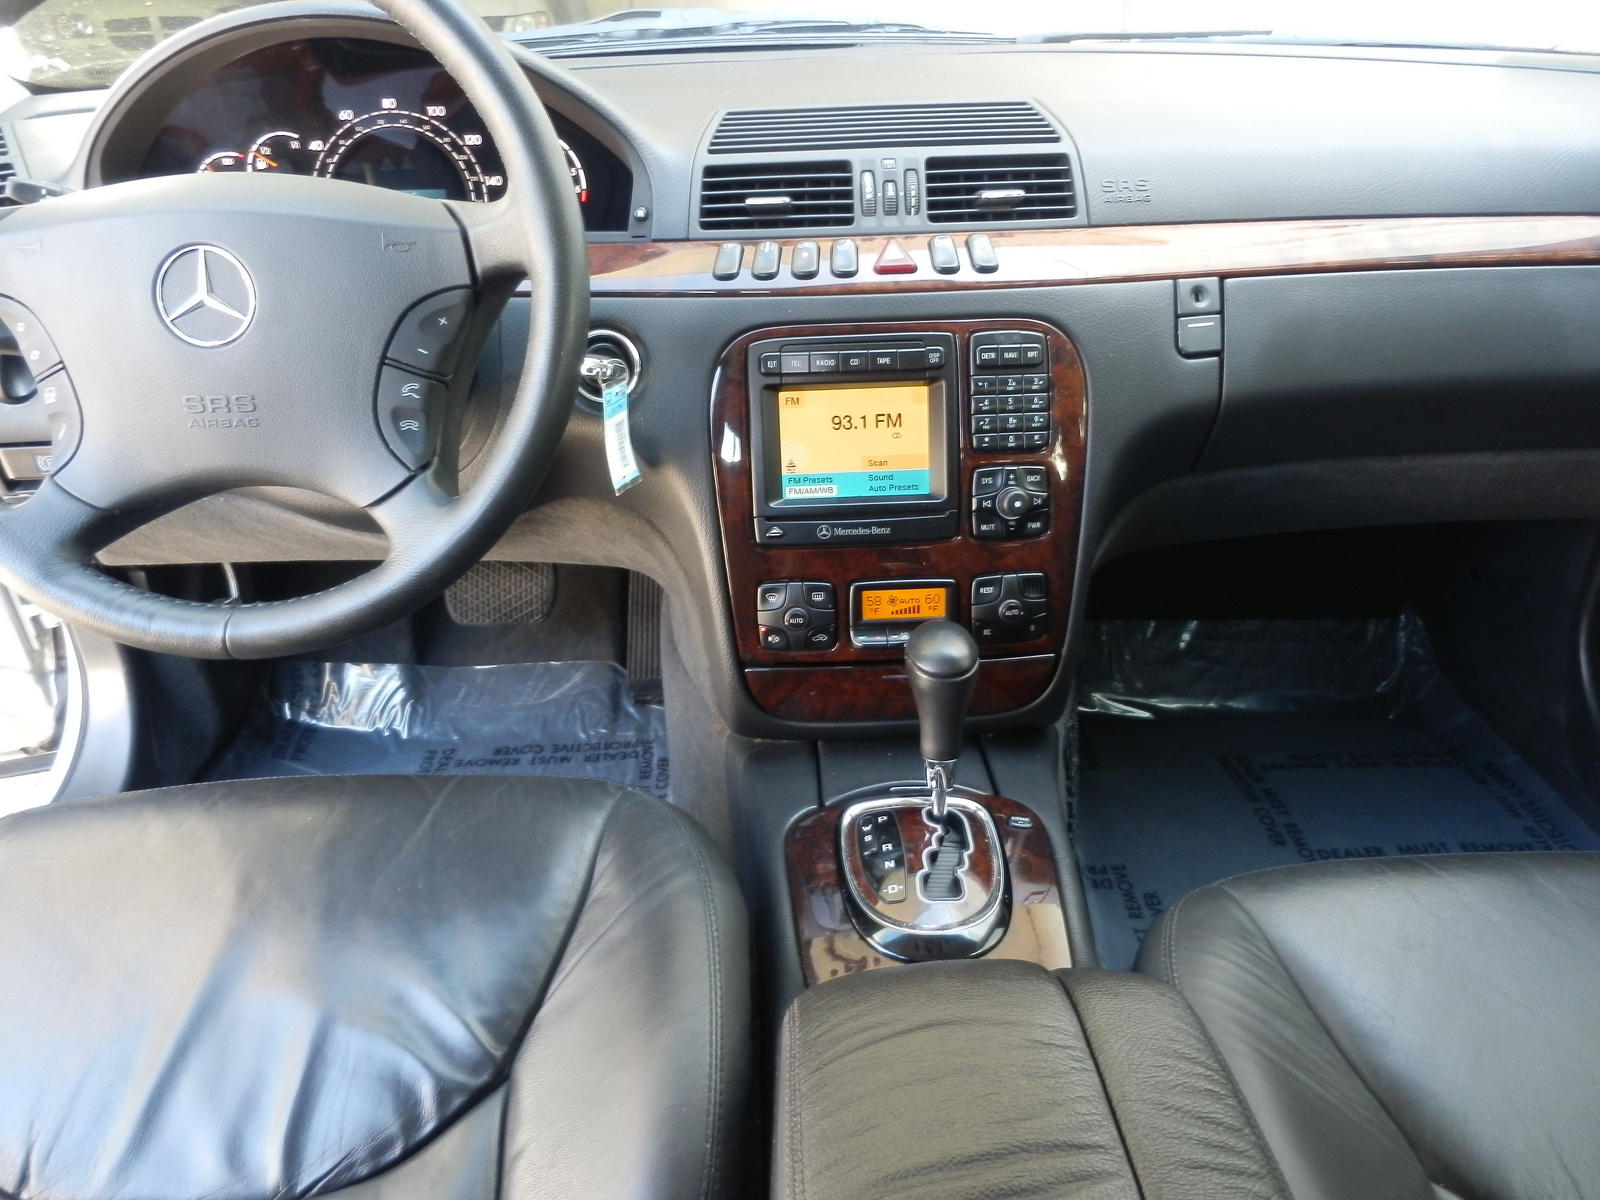 2000 mercedes benz s class interior pictures cargurus for Mercedes benz s class 2000